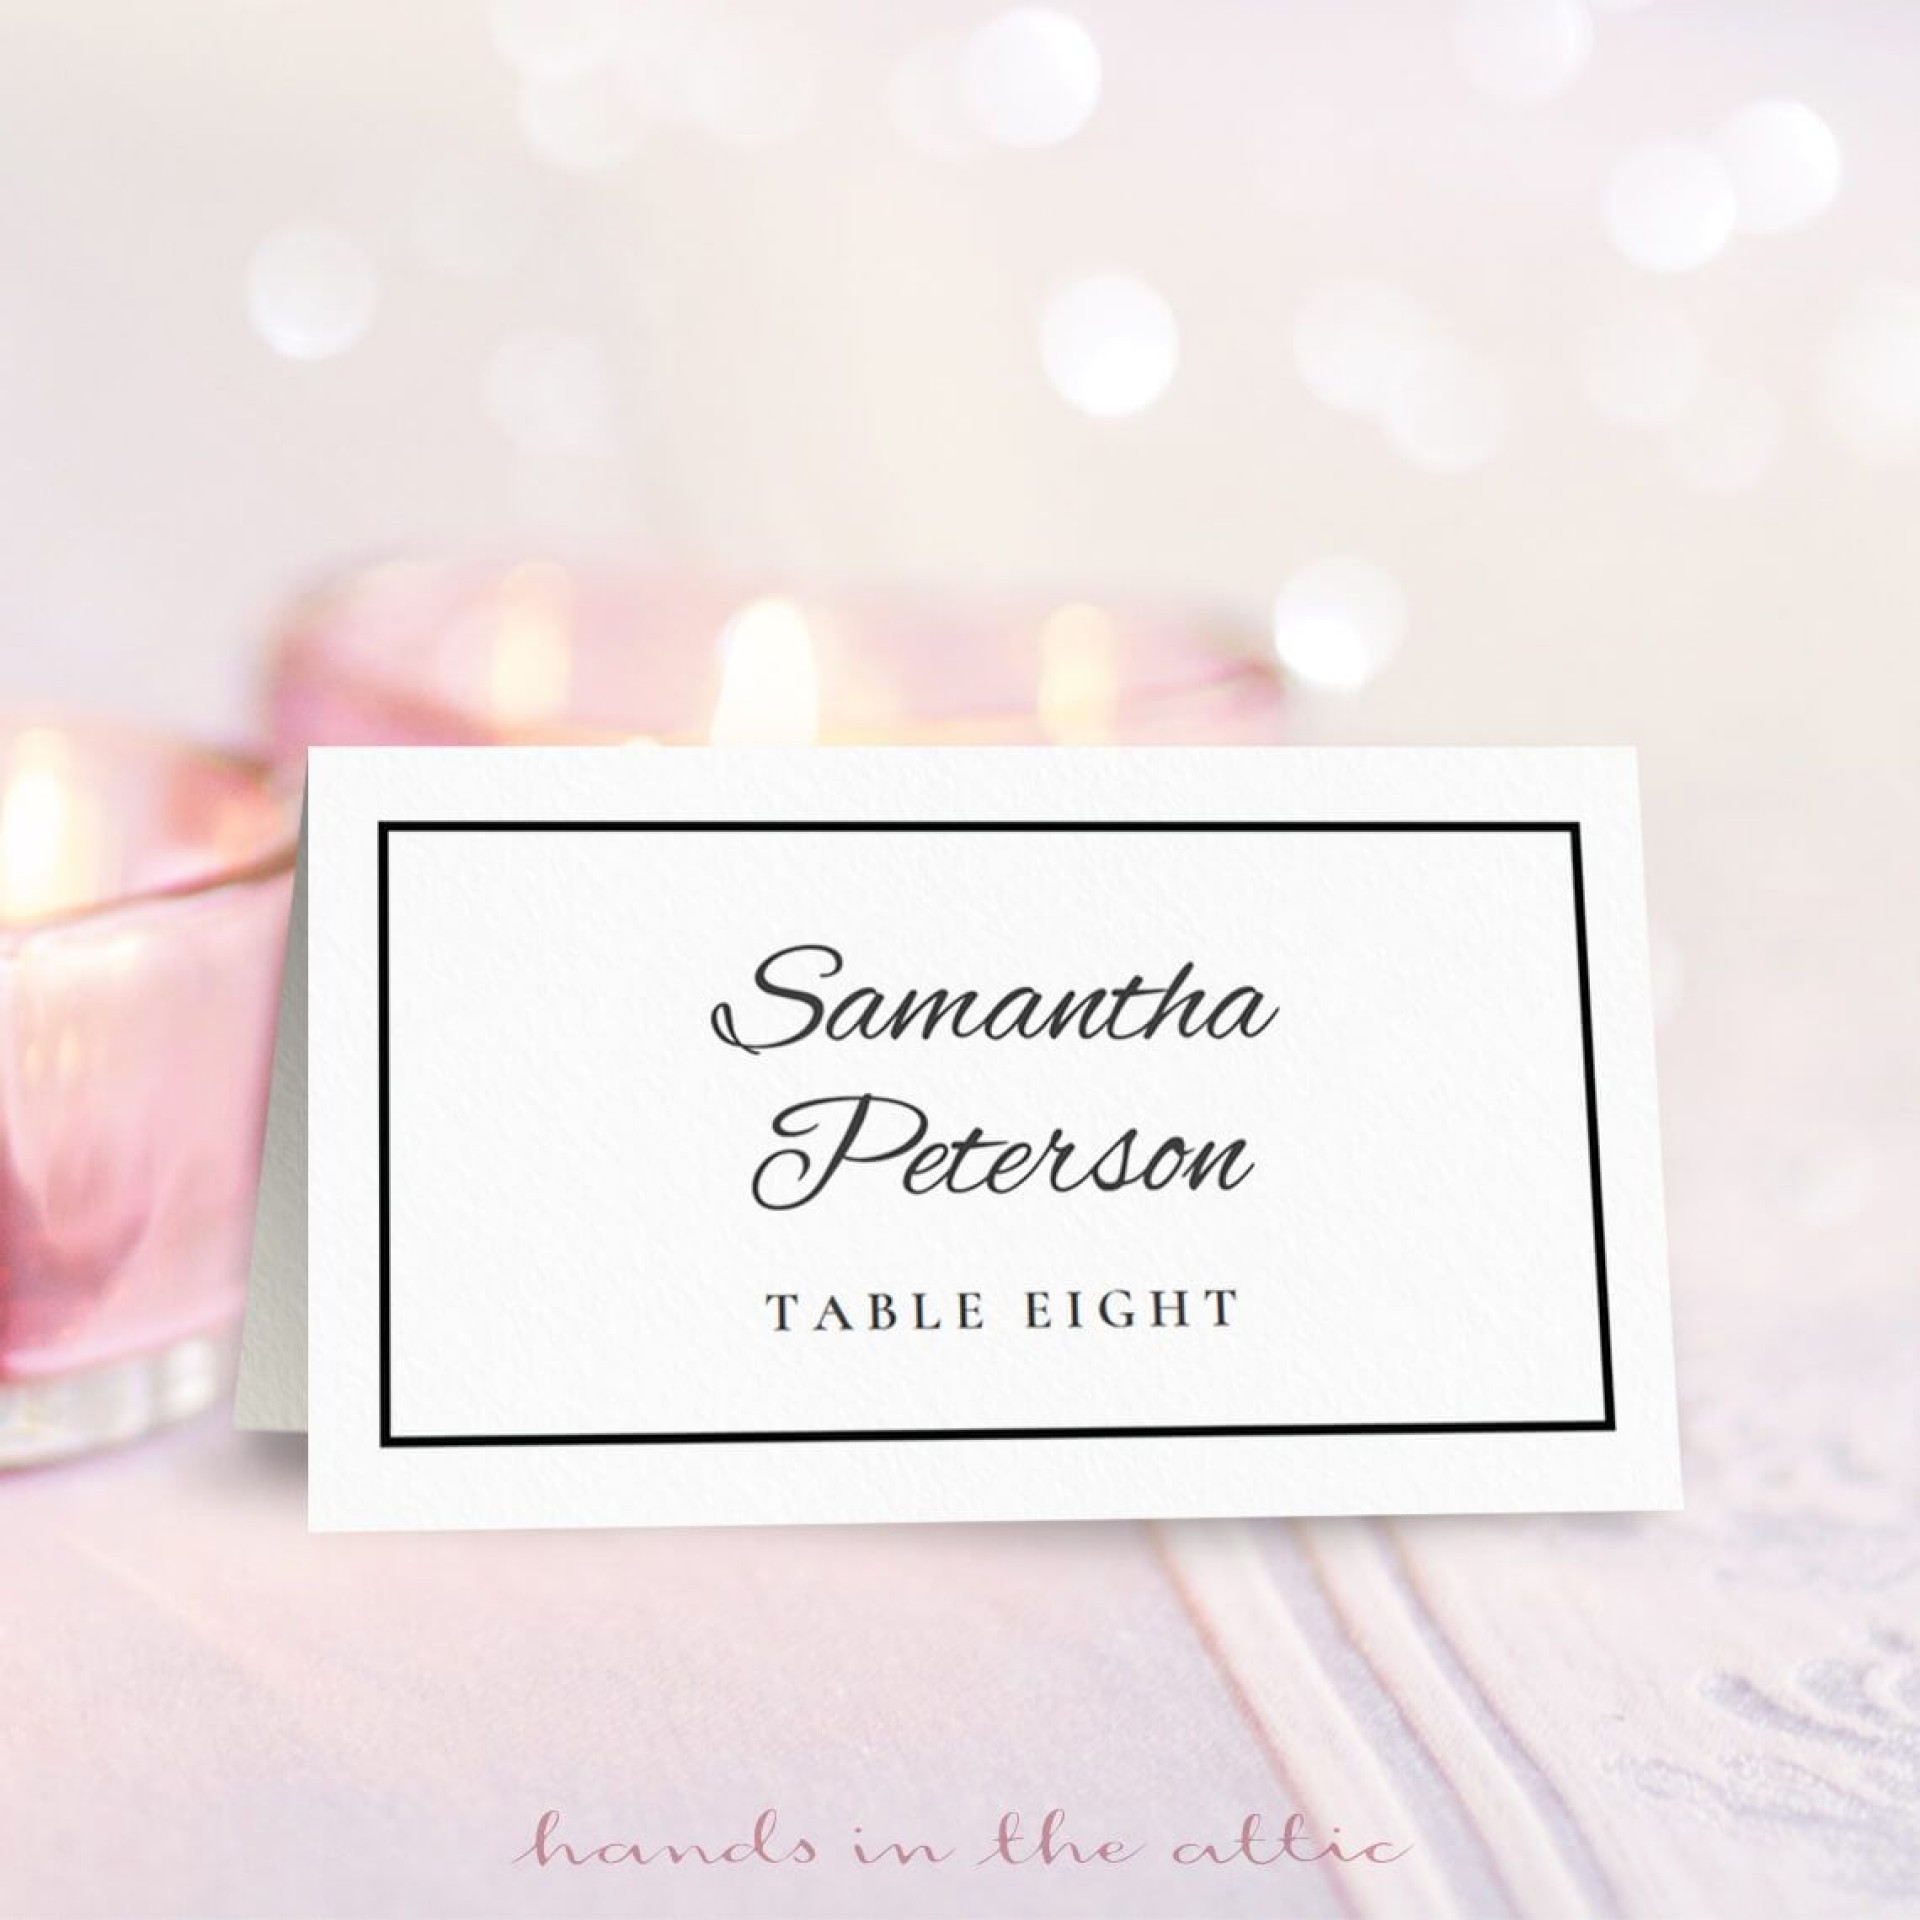 003 Surprising Wedding Name Card Template Highest Clarity  Templates For Table Place Free1920